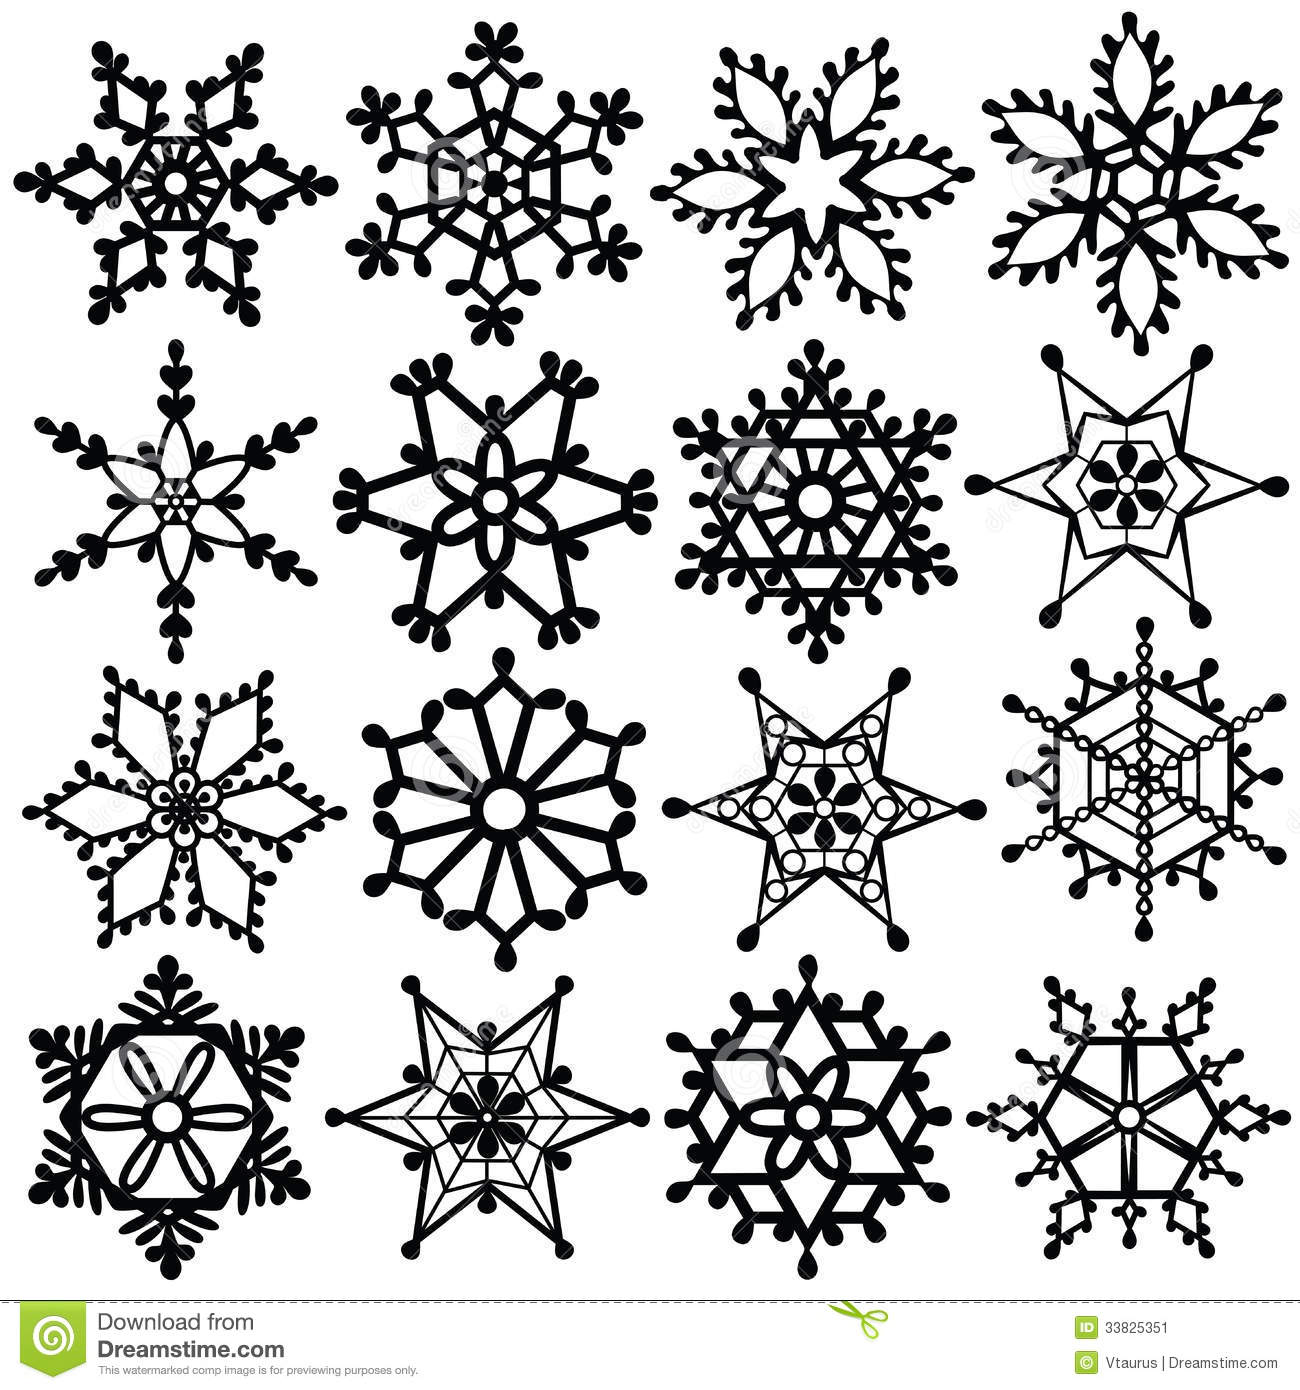 Clipart Snowflake Black And White